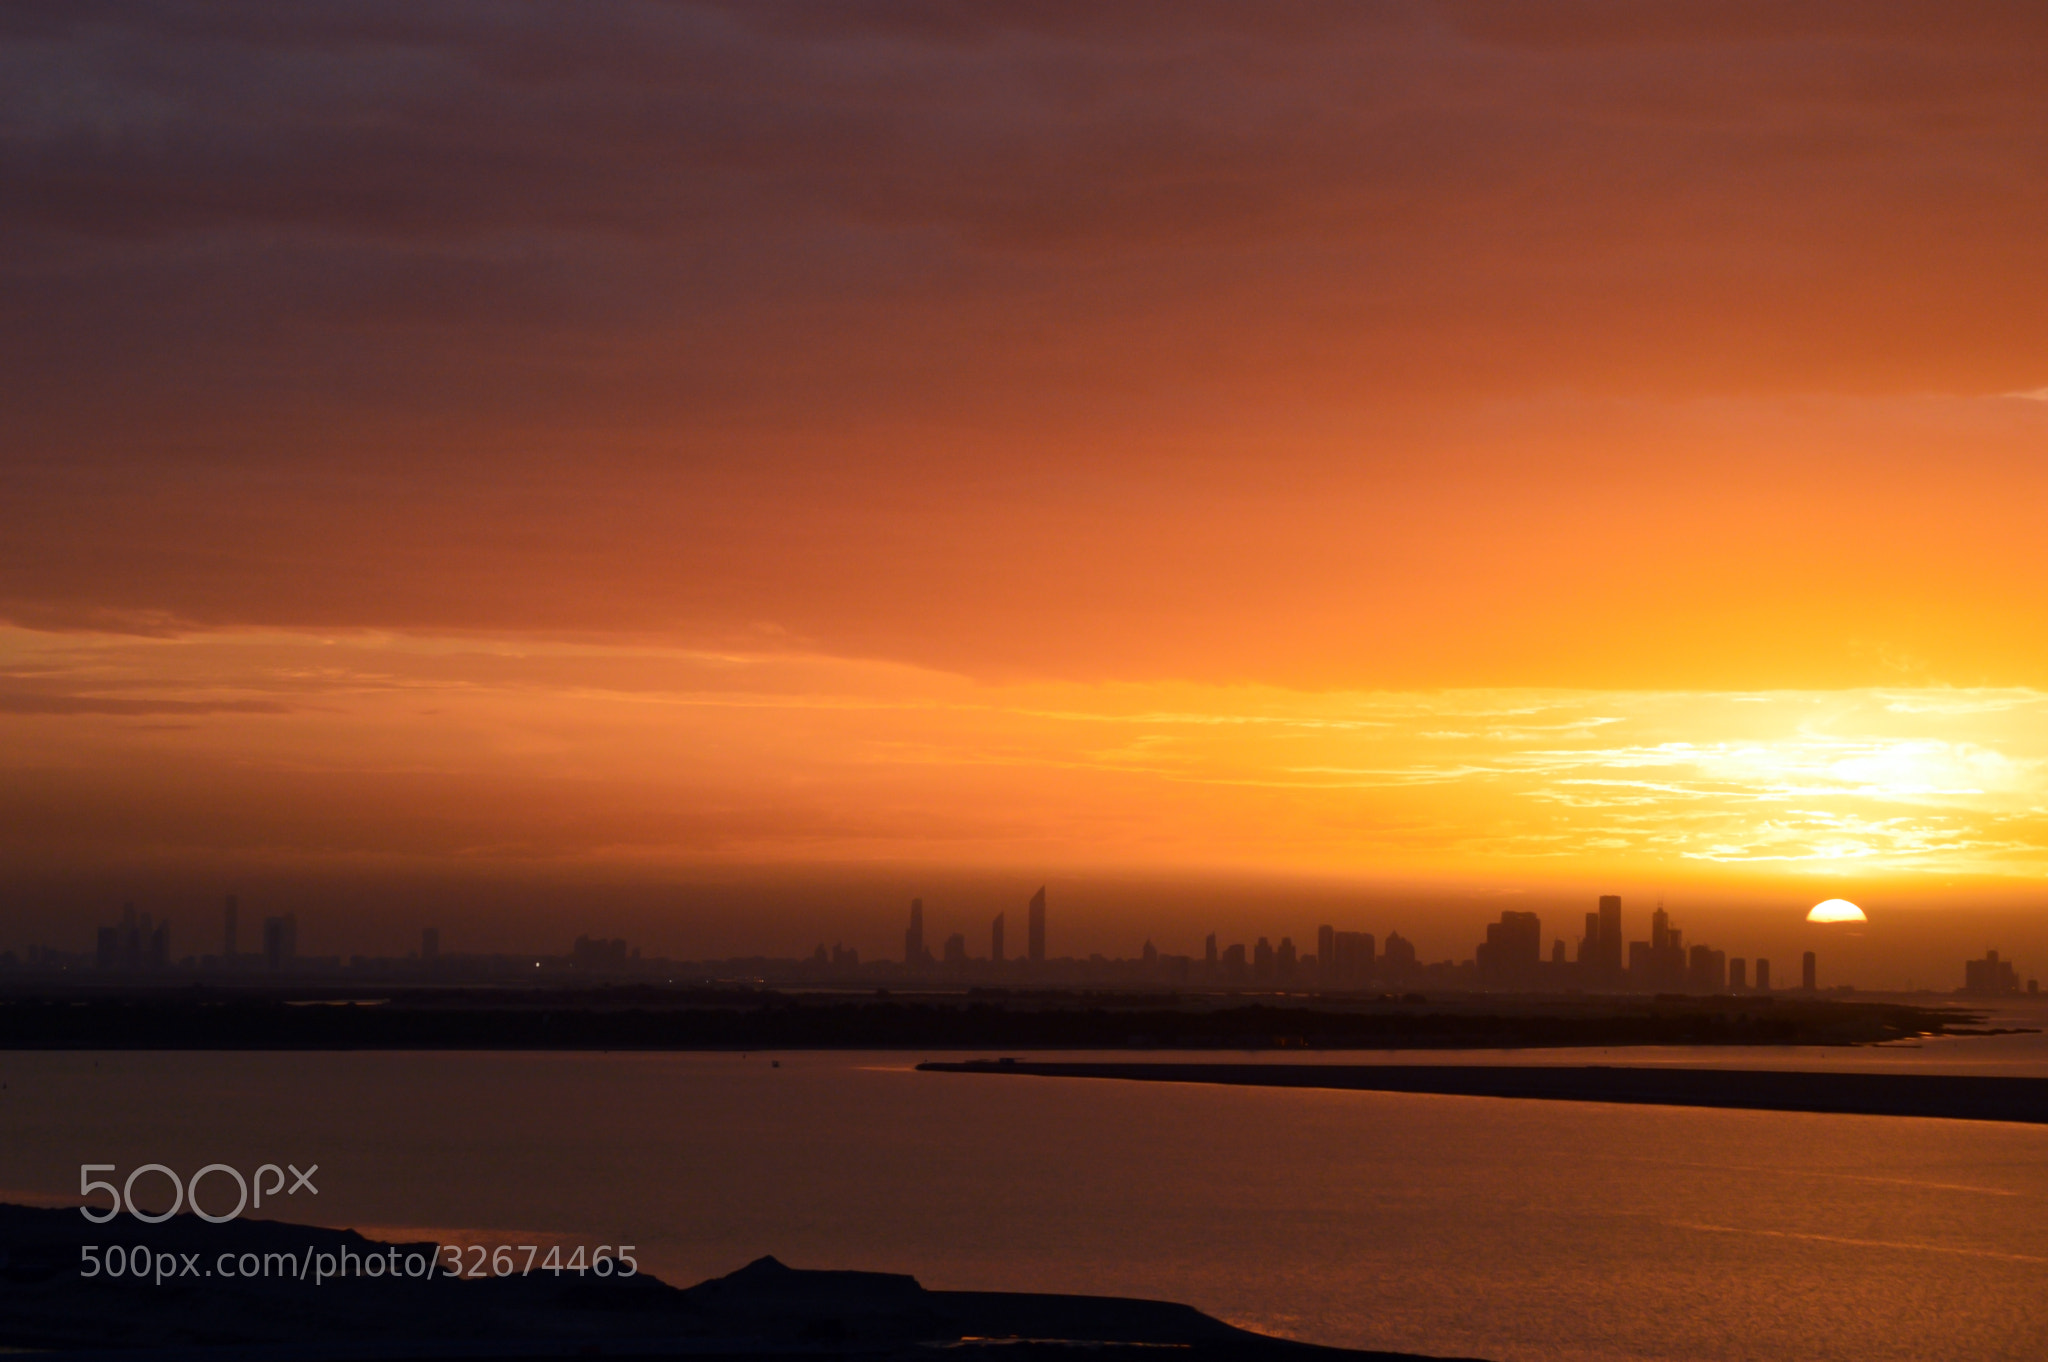 Photograph Sunset over Abu Dhabi City by Garry Dow on 500px